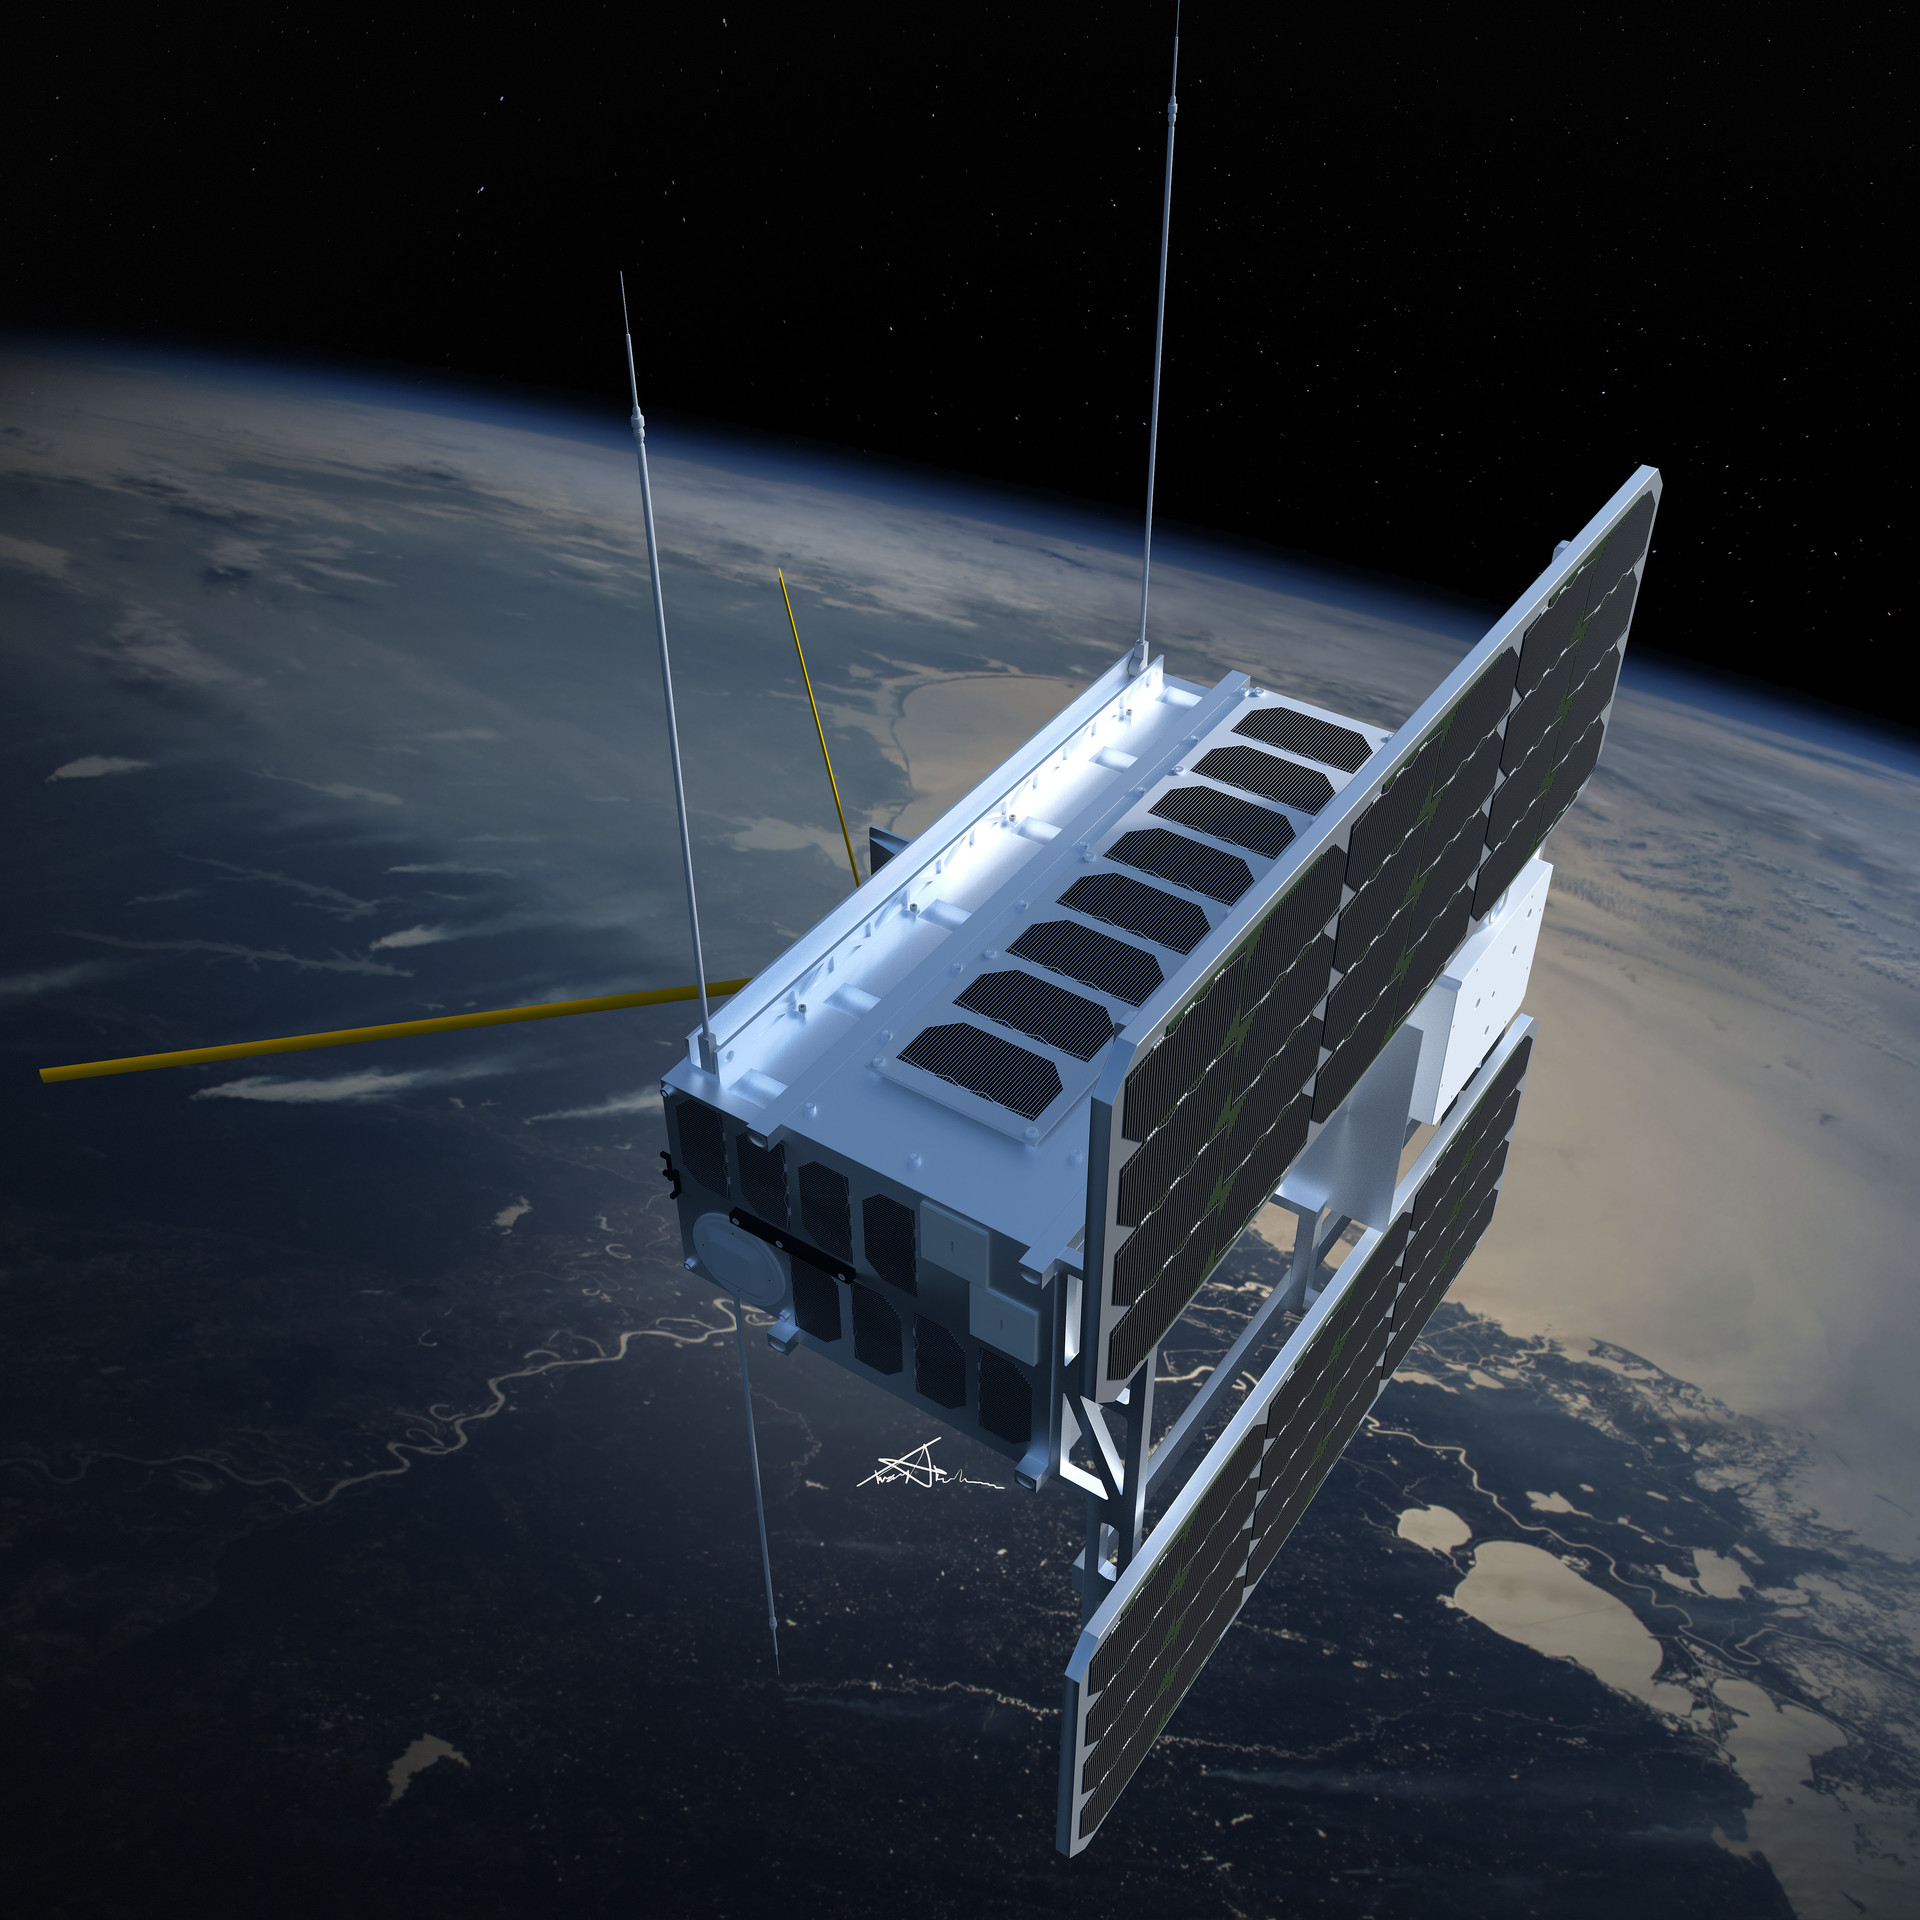 Artists view of the Norwegian satellite Norsat-1 in orbit with all instruments extended.